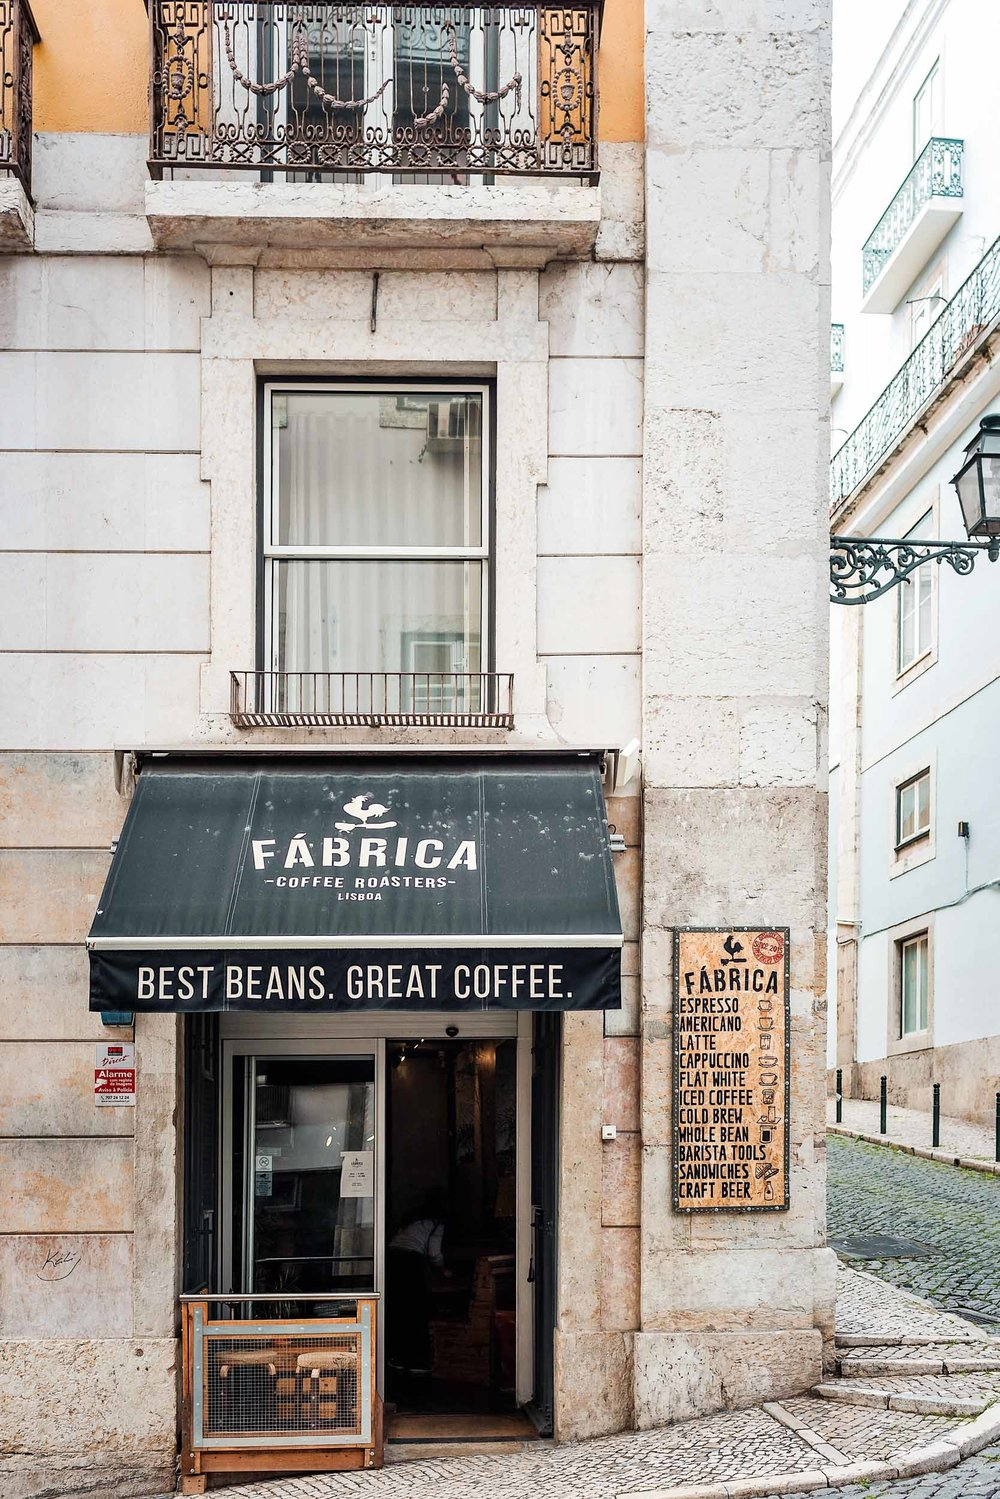 Fabrica Coffee Roasters is a coffee shop located on one of my favorite streets in Lisbon, Rua das Flores!